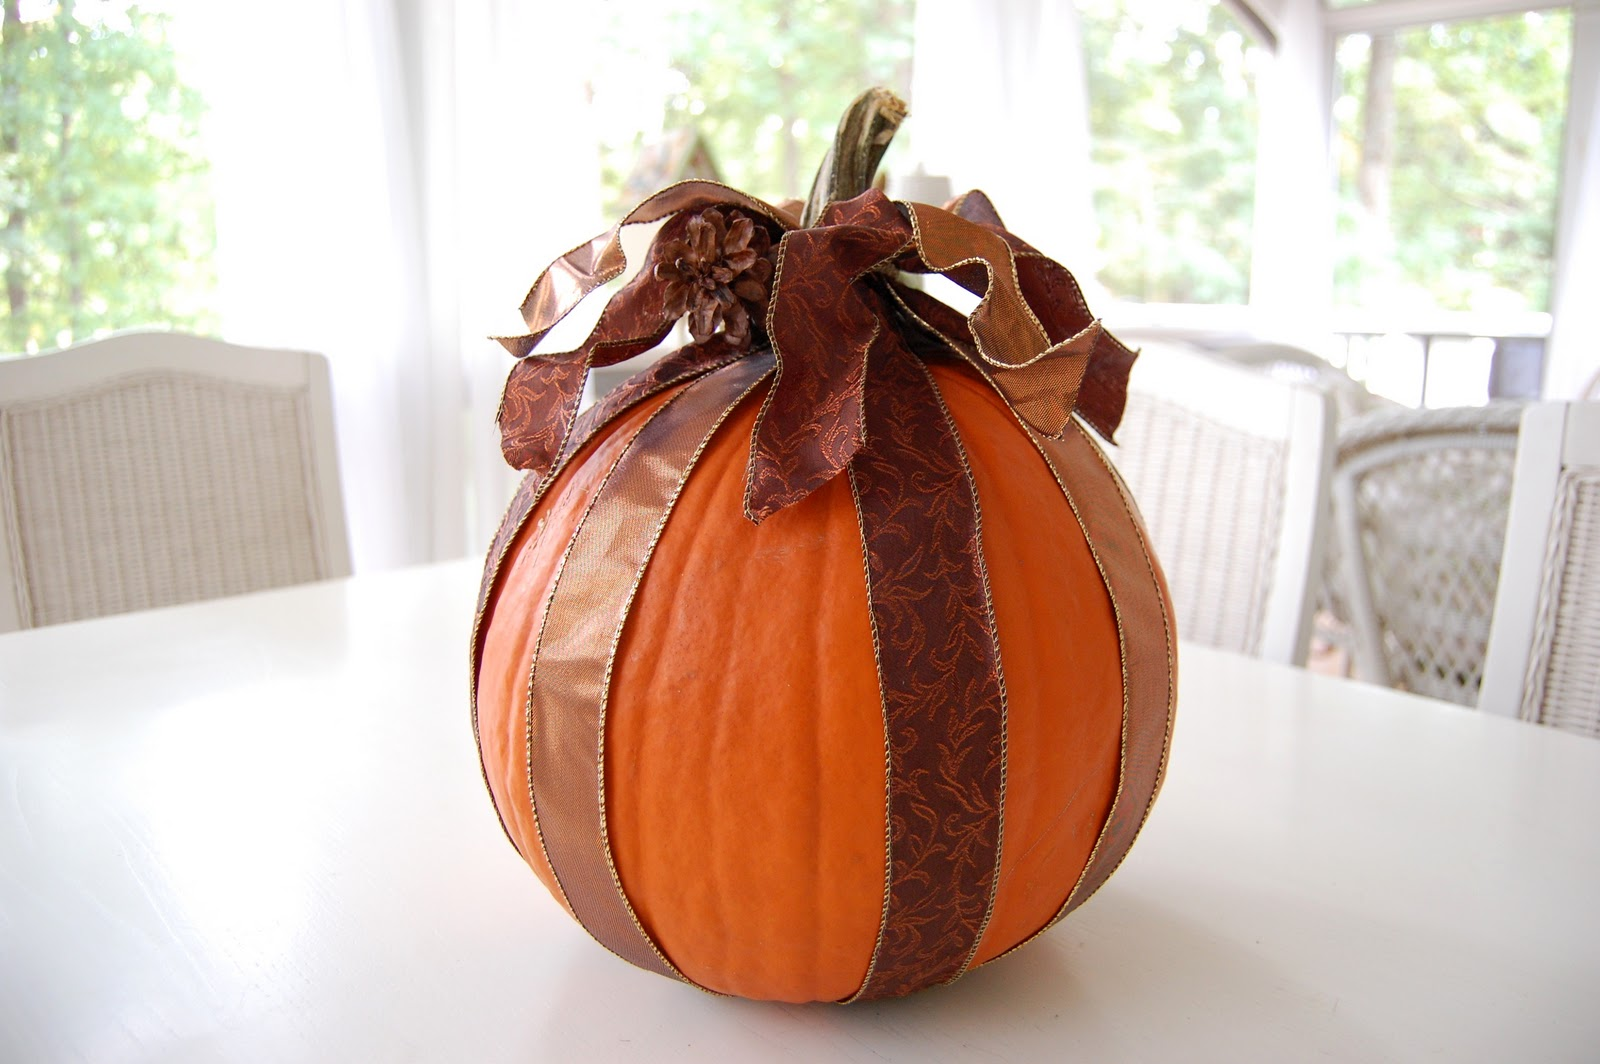 Creative pumpkin decorating ideas 11 interior design Unique pumpkin decorating ideas